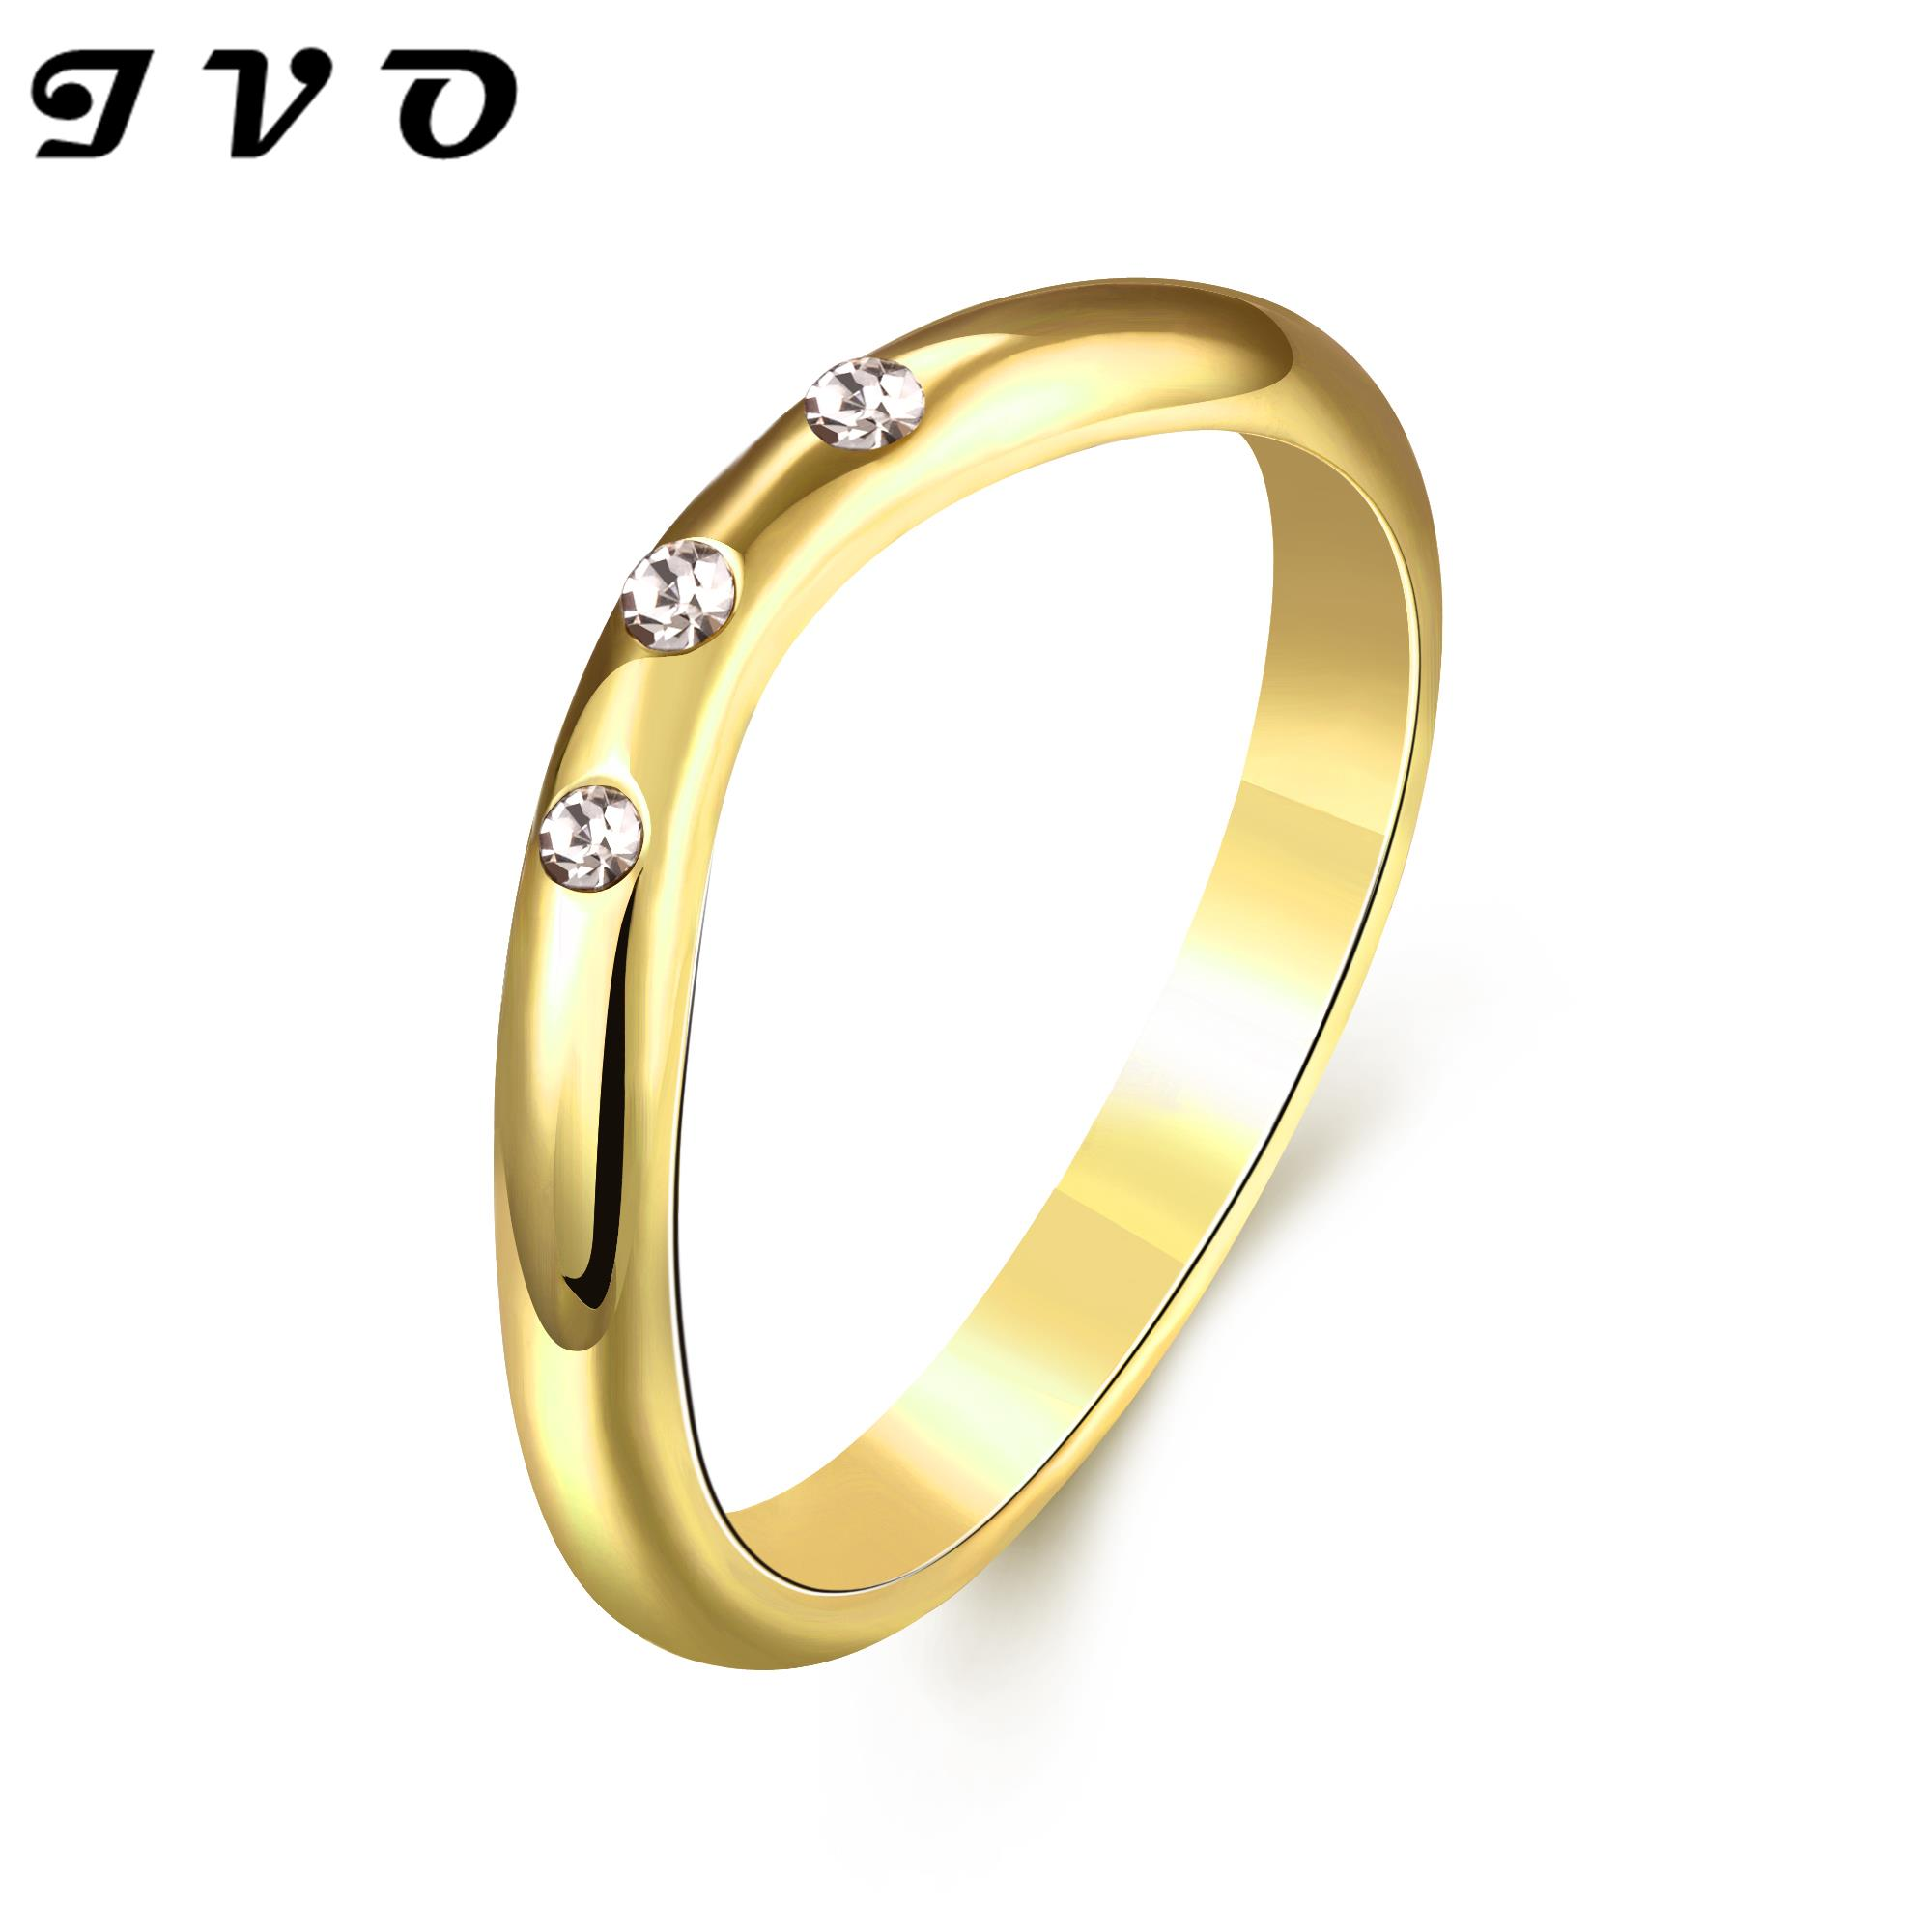 high polish band keepsake rings of best pertaining carat gold with pure yellow bands ideas wedding finish to